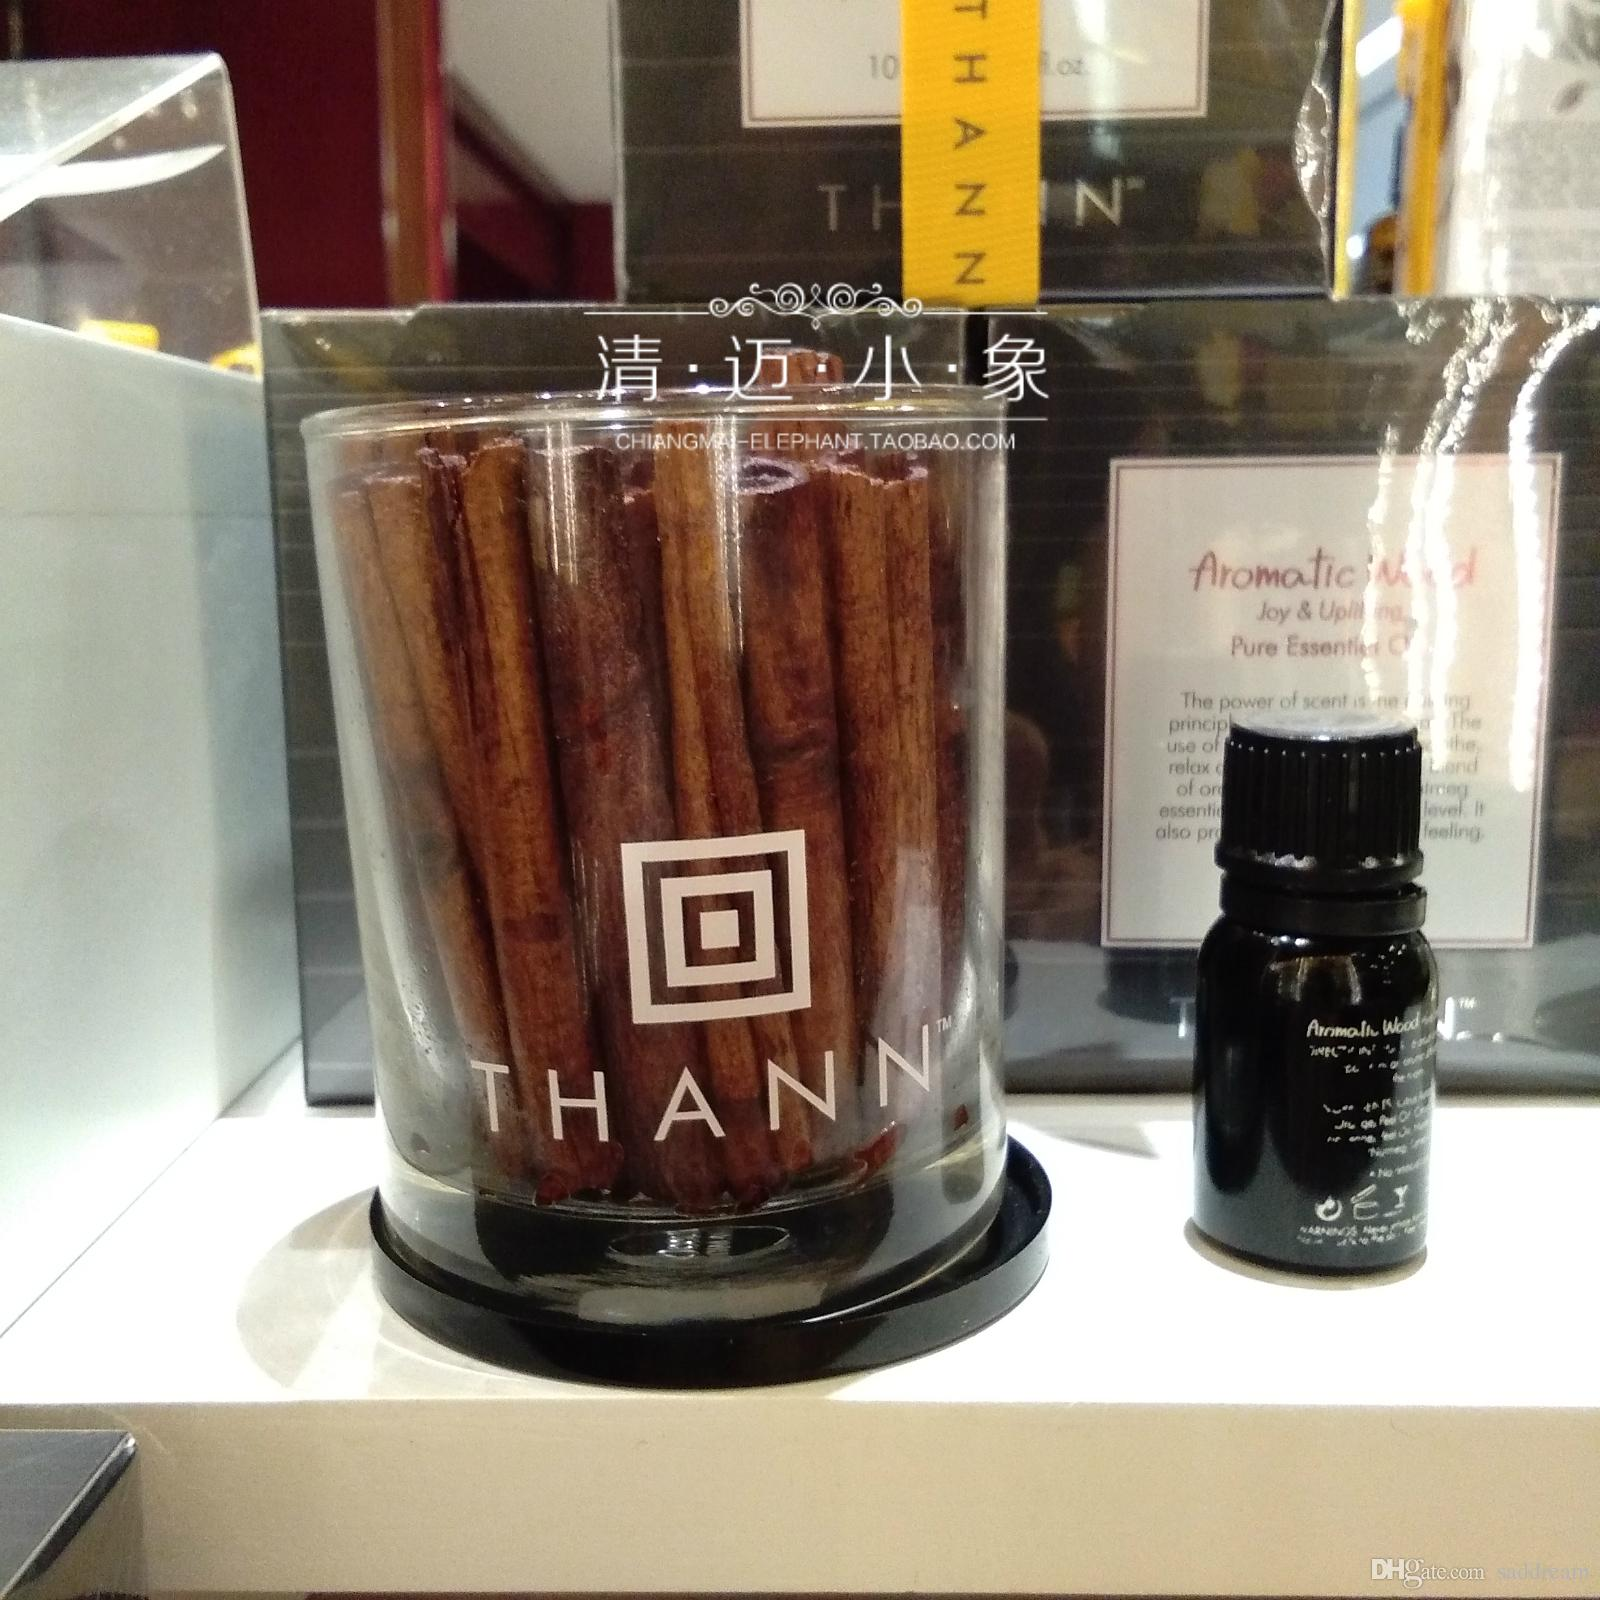 Thai Thann Ting Cinnamon Wood Lemongrass Rose Jasminol Scented Oil ...